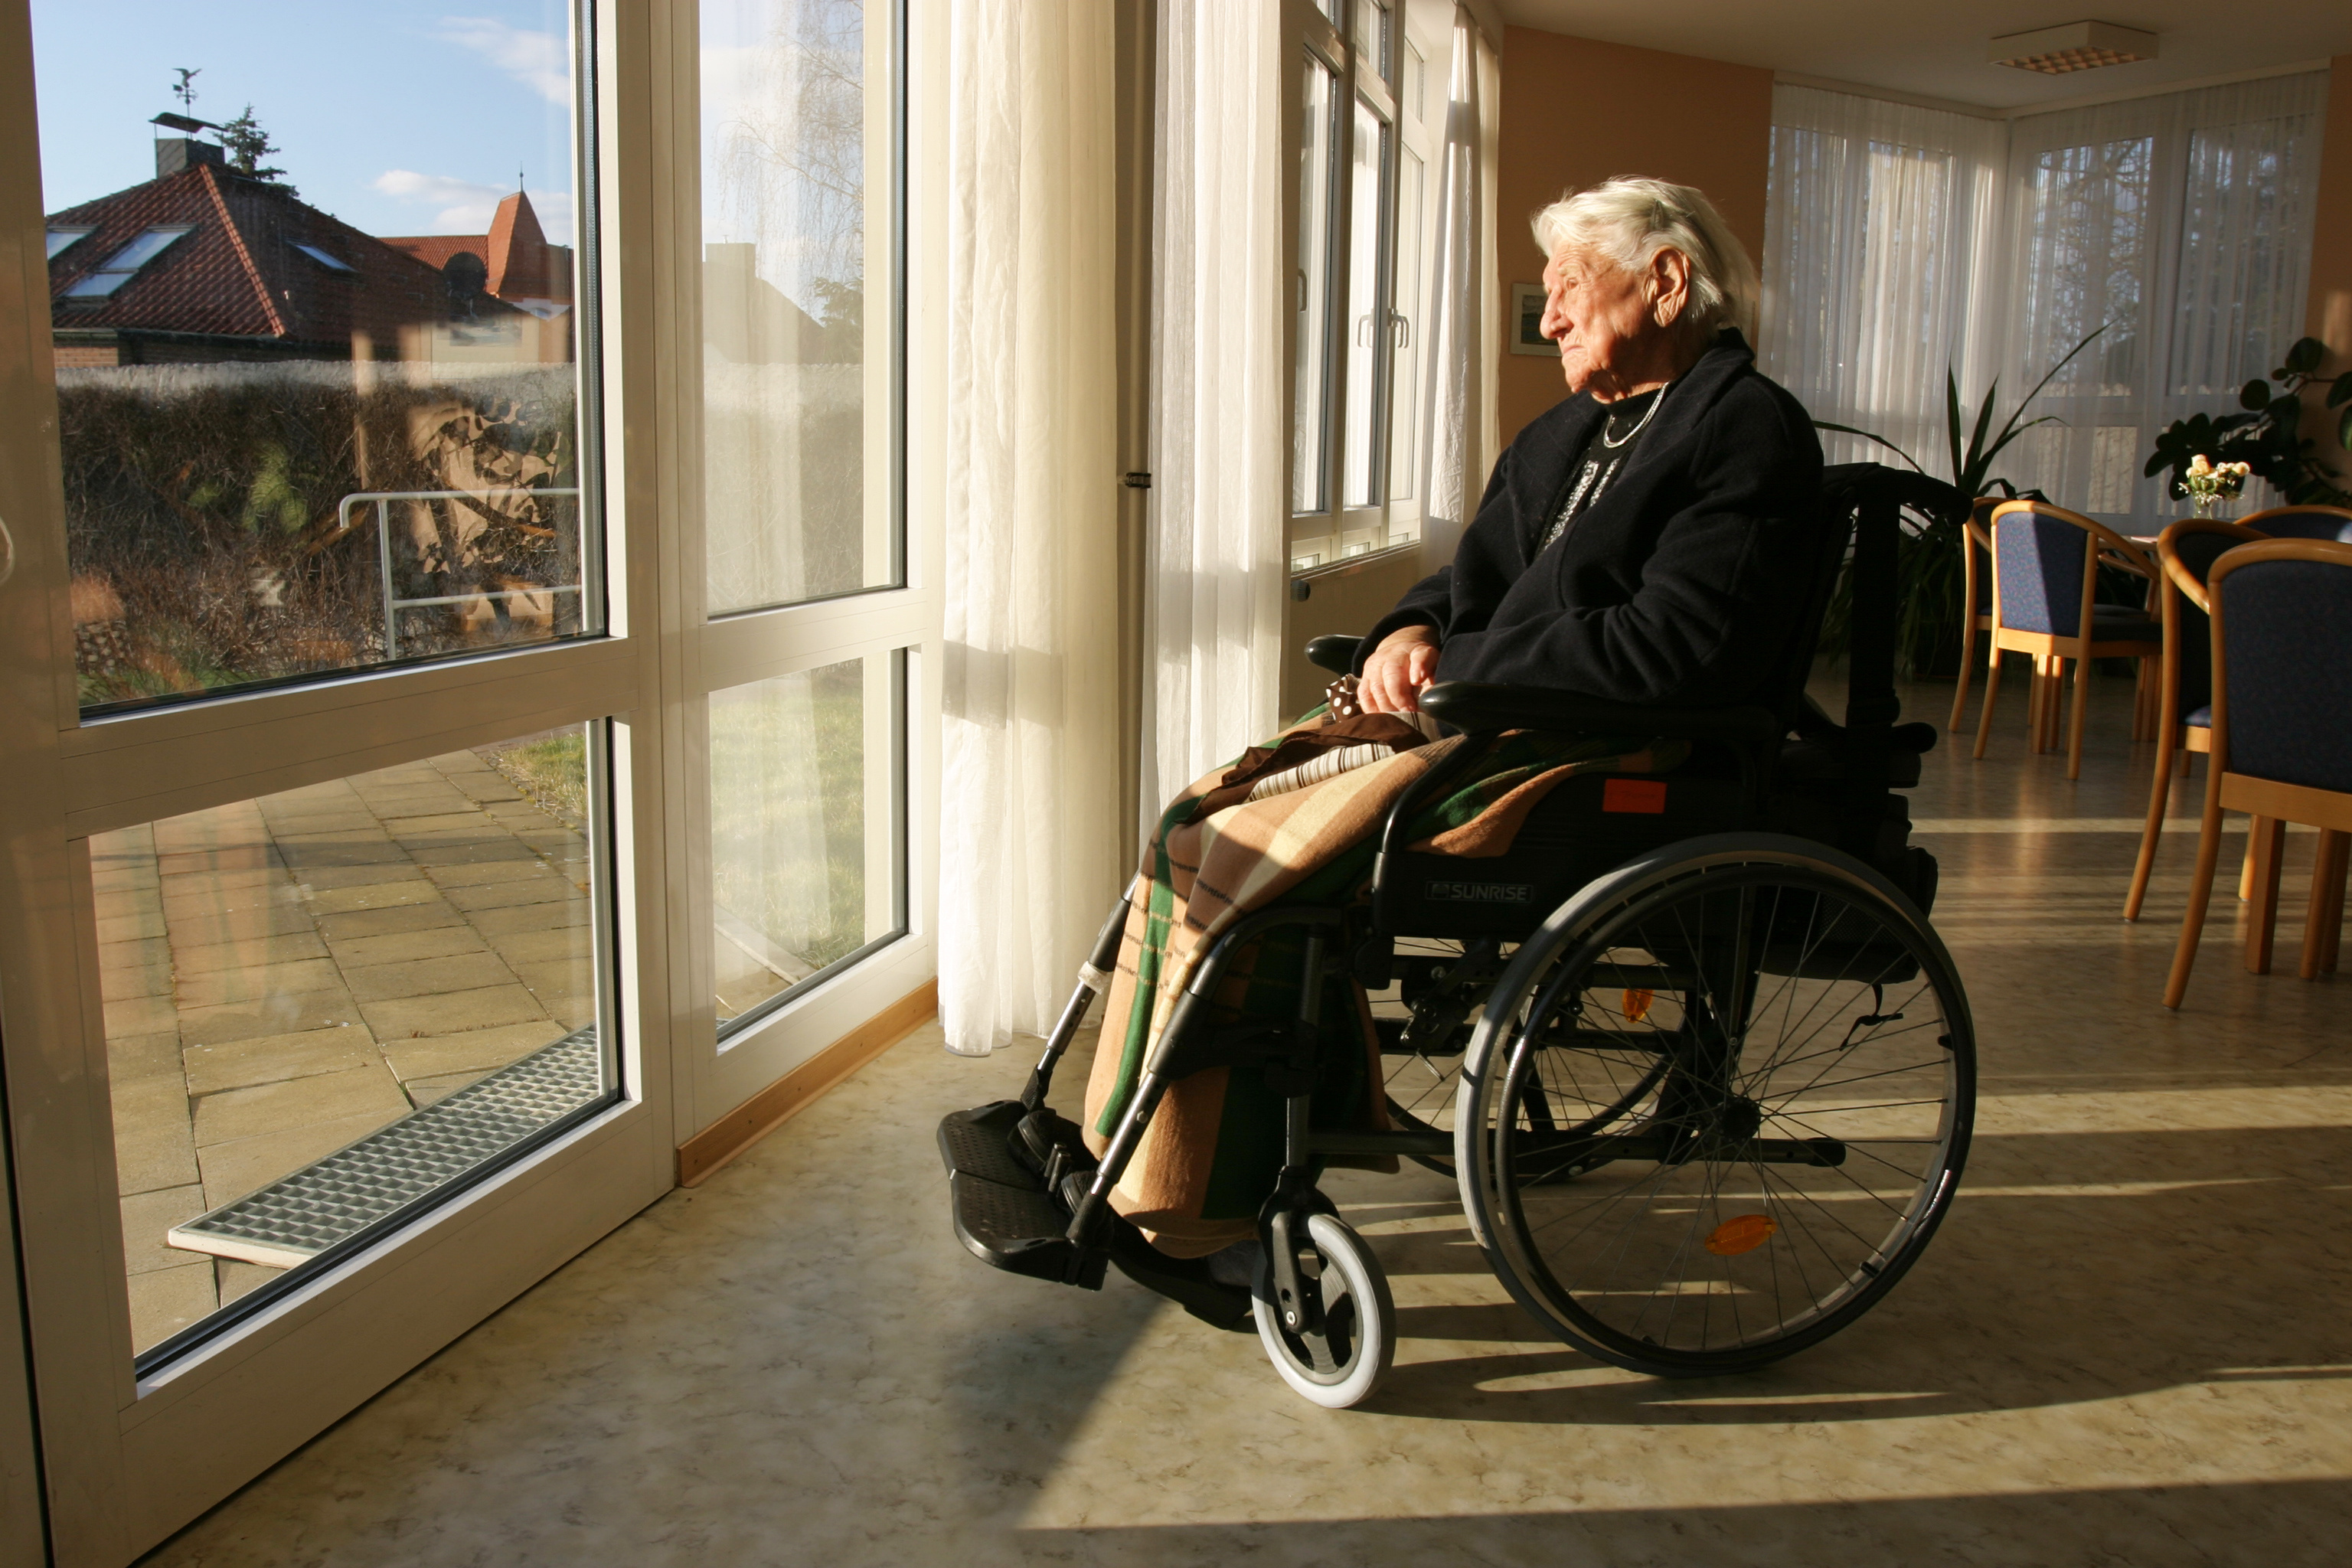 Elderly woman looking out window of lonely nursing home